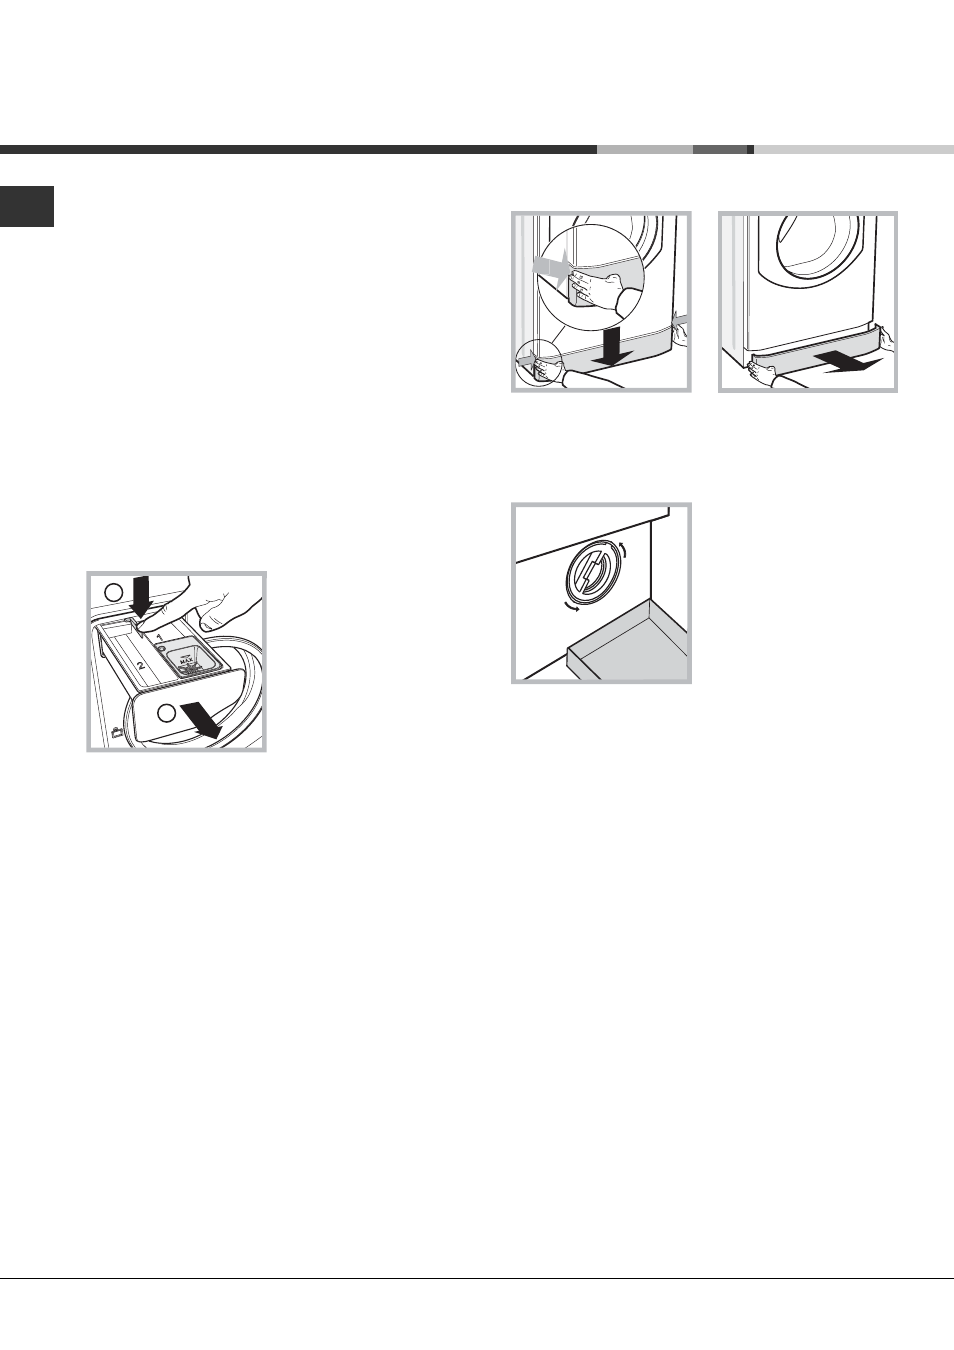 Care and maintenance | Hotpoint AQUALTIS WASHING MACHINE AQ7F User Manual |  Page 12 / 16